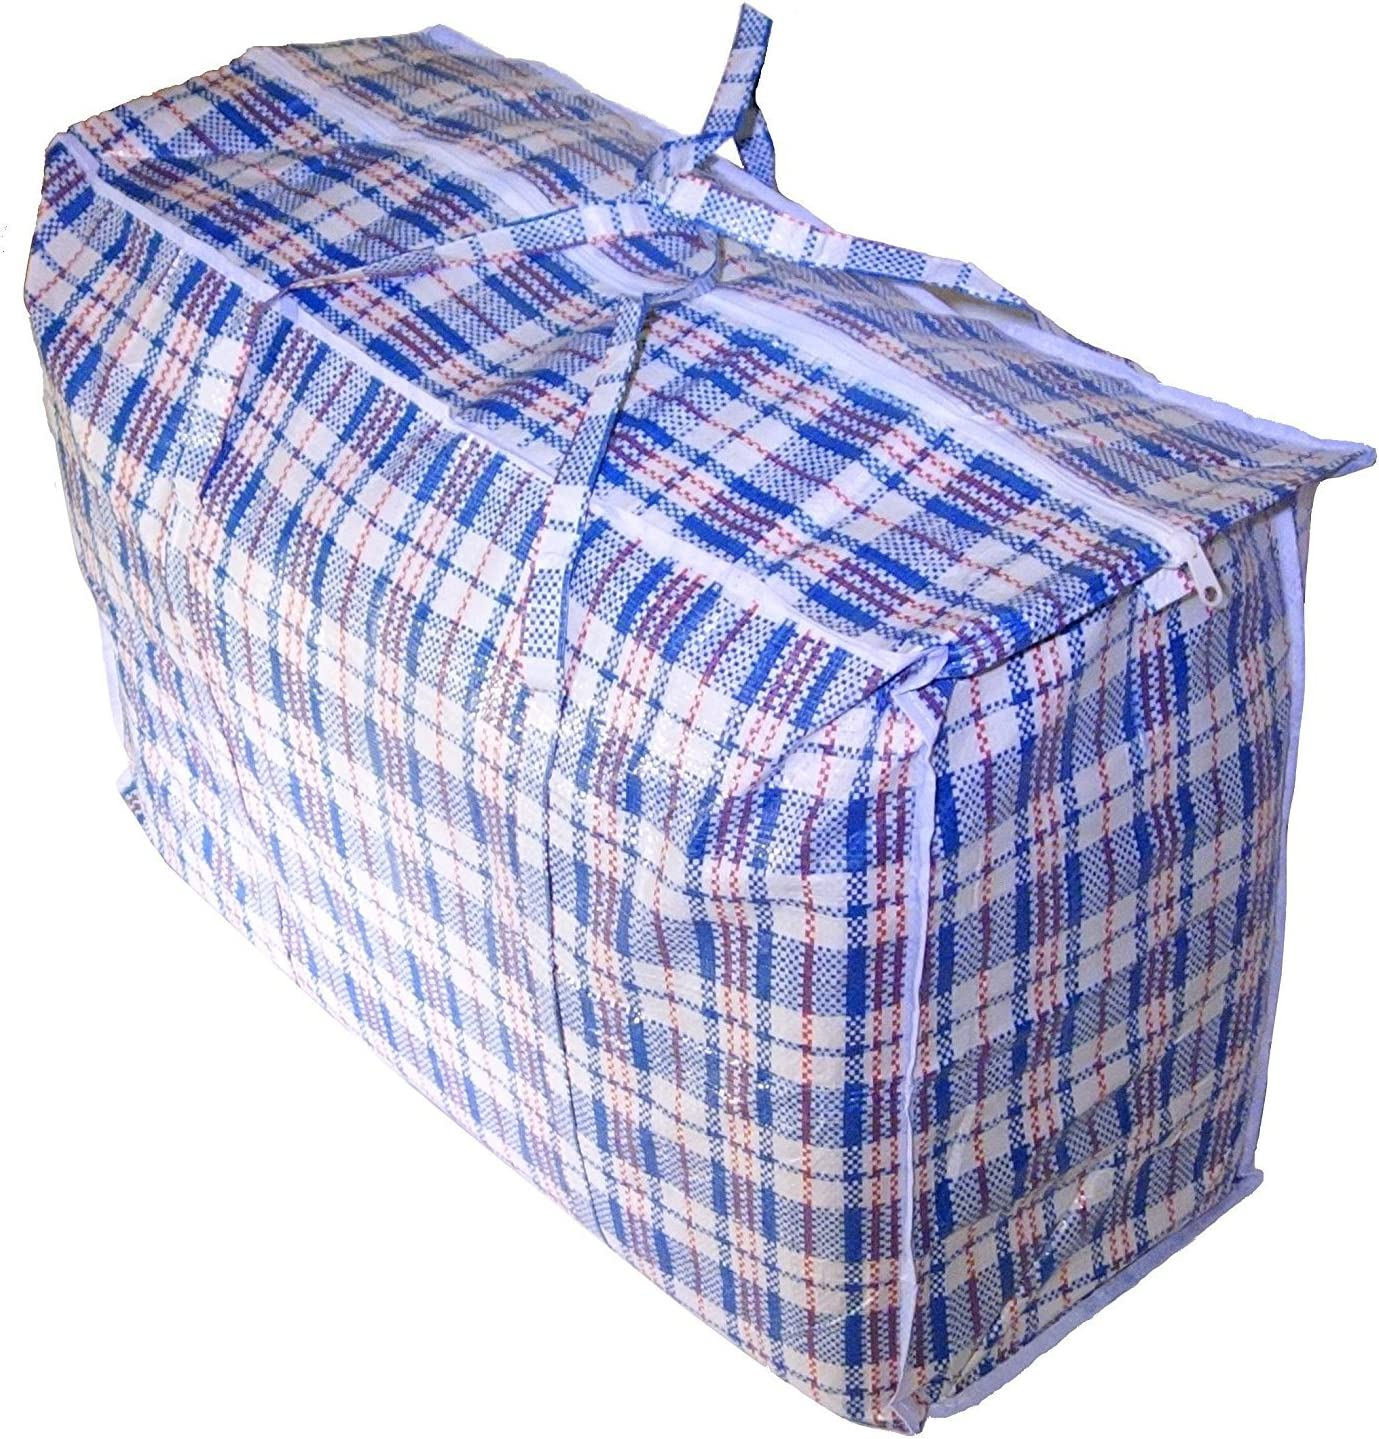 "Set of 3 SUPER GIANT JUMBO Laundry/Storage/Transport/DormRoom Checker Shopping Bags with Zipper & Handles, Size=27""H x 31""L x 7""W Colors Vary between Blue/Red/Black/White Check Design"